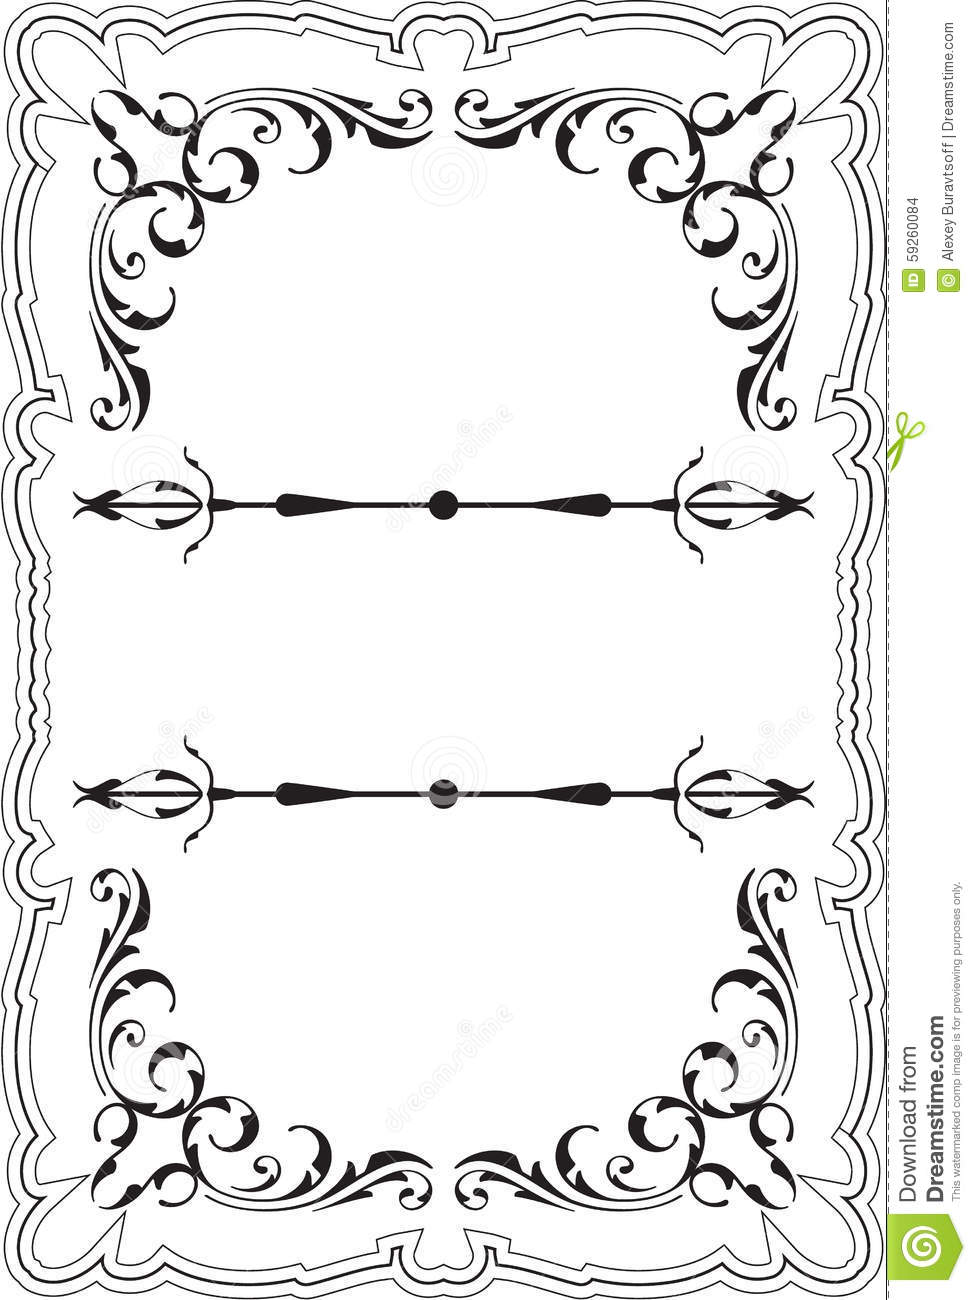 Scrolling perfect frame stock vector. Illustration of design - 59260084